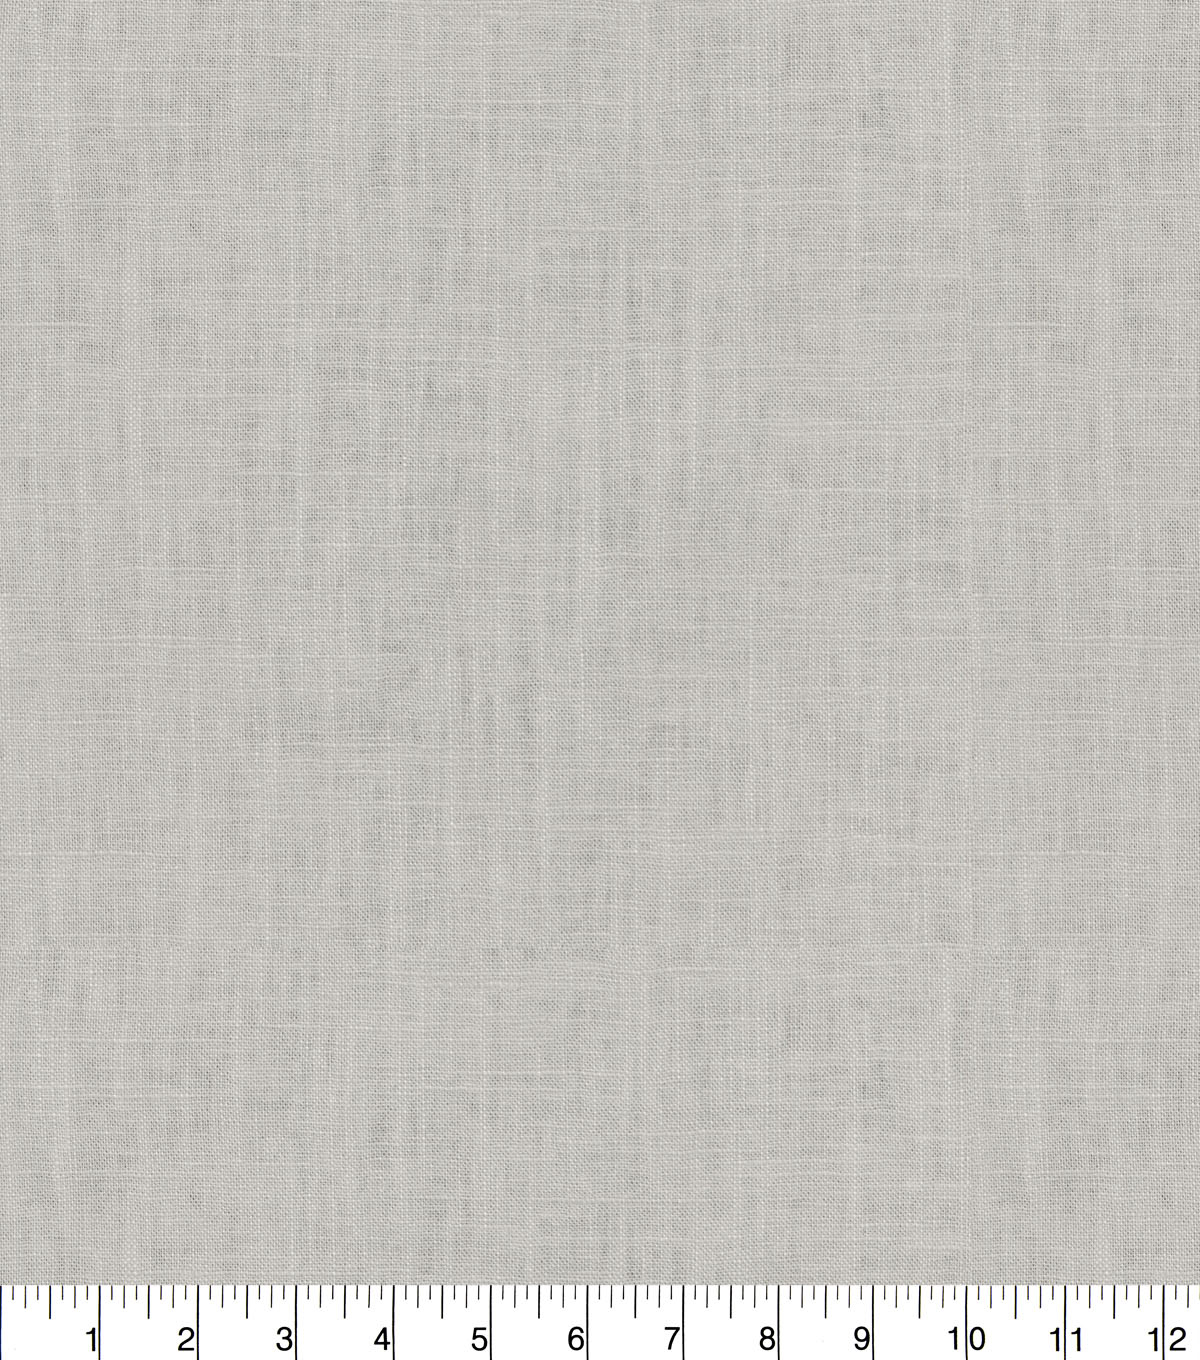 Home Decor 8\u0022x8\u0022 Fabric Swatch-P/K Lifestyles Shoreline Pumice